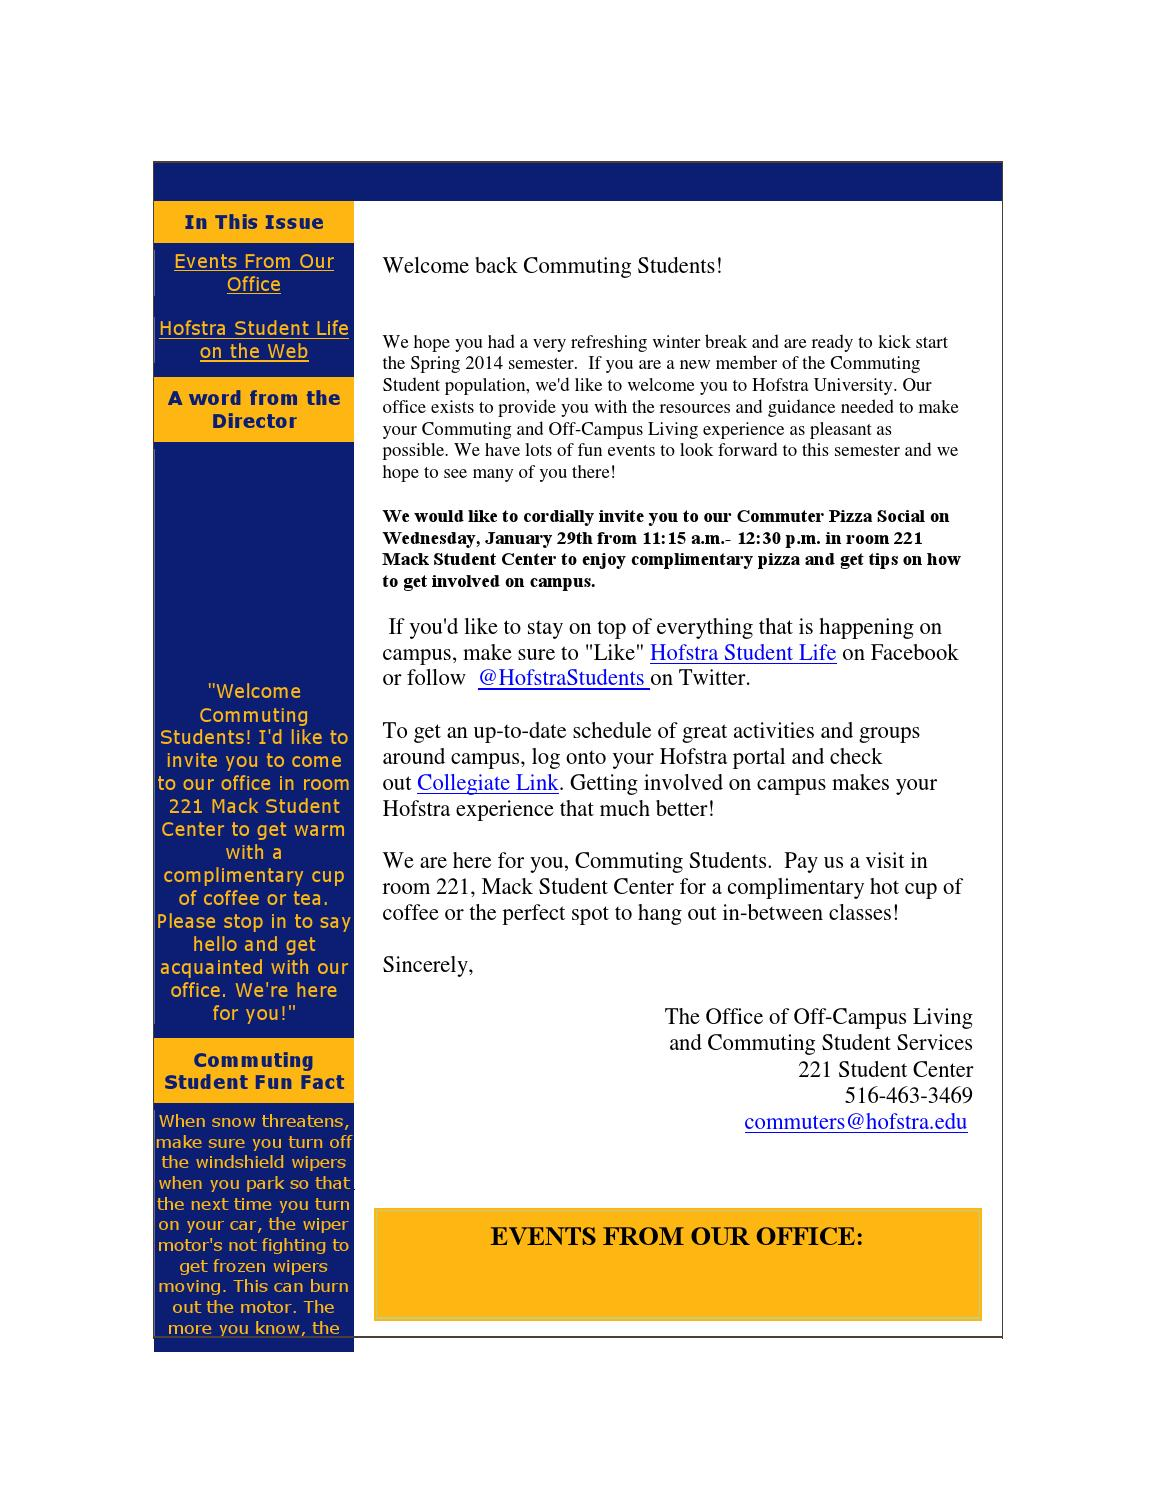 Marvelous Welcome Back Newsletter January 2014 By Hofstra University Download Free Architecture Designs Scobabritishbridgeorg